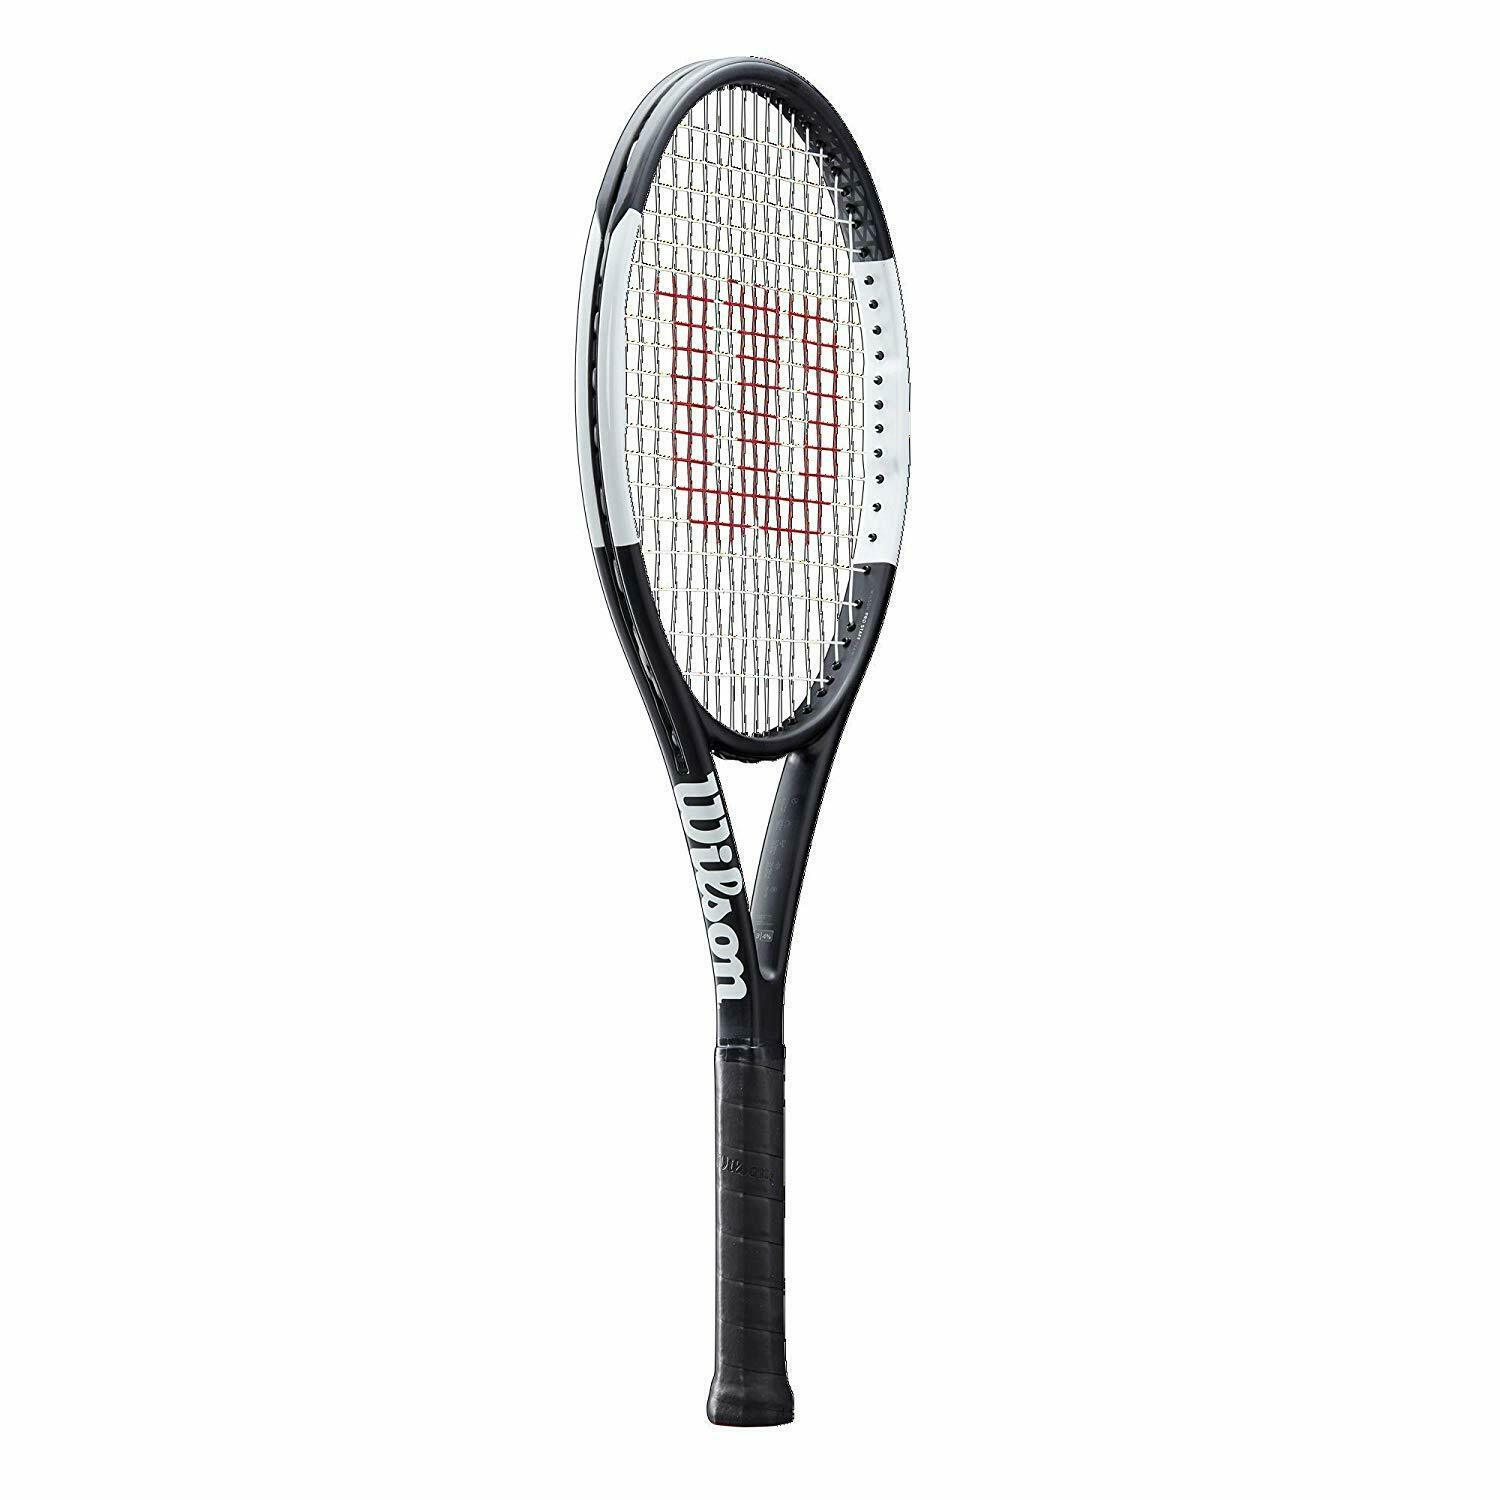 Primary image for Wilson - WR000610U - Pro Staff Team Tennis Racket - Grip Size 4 3/8""